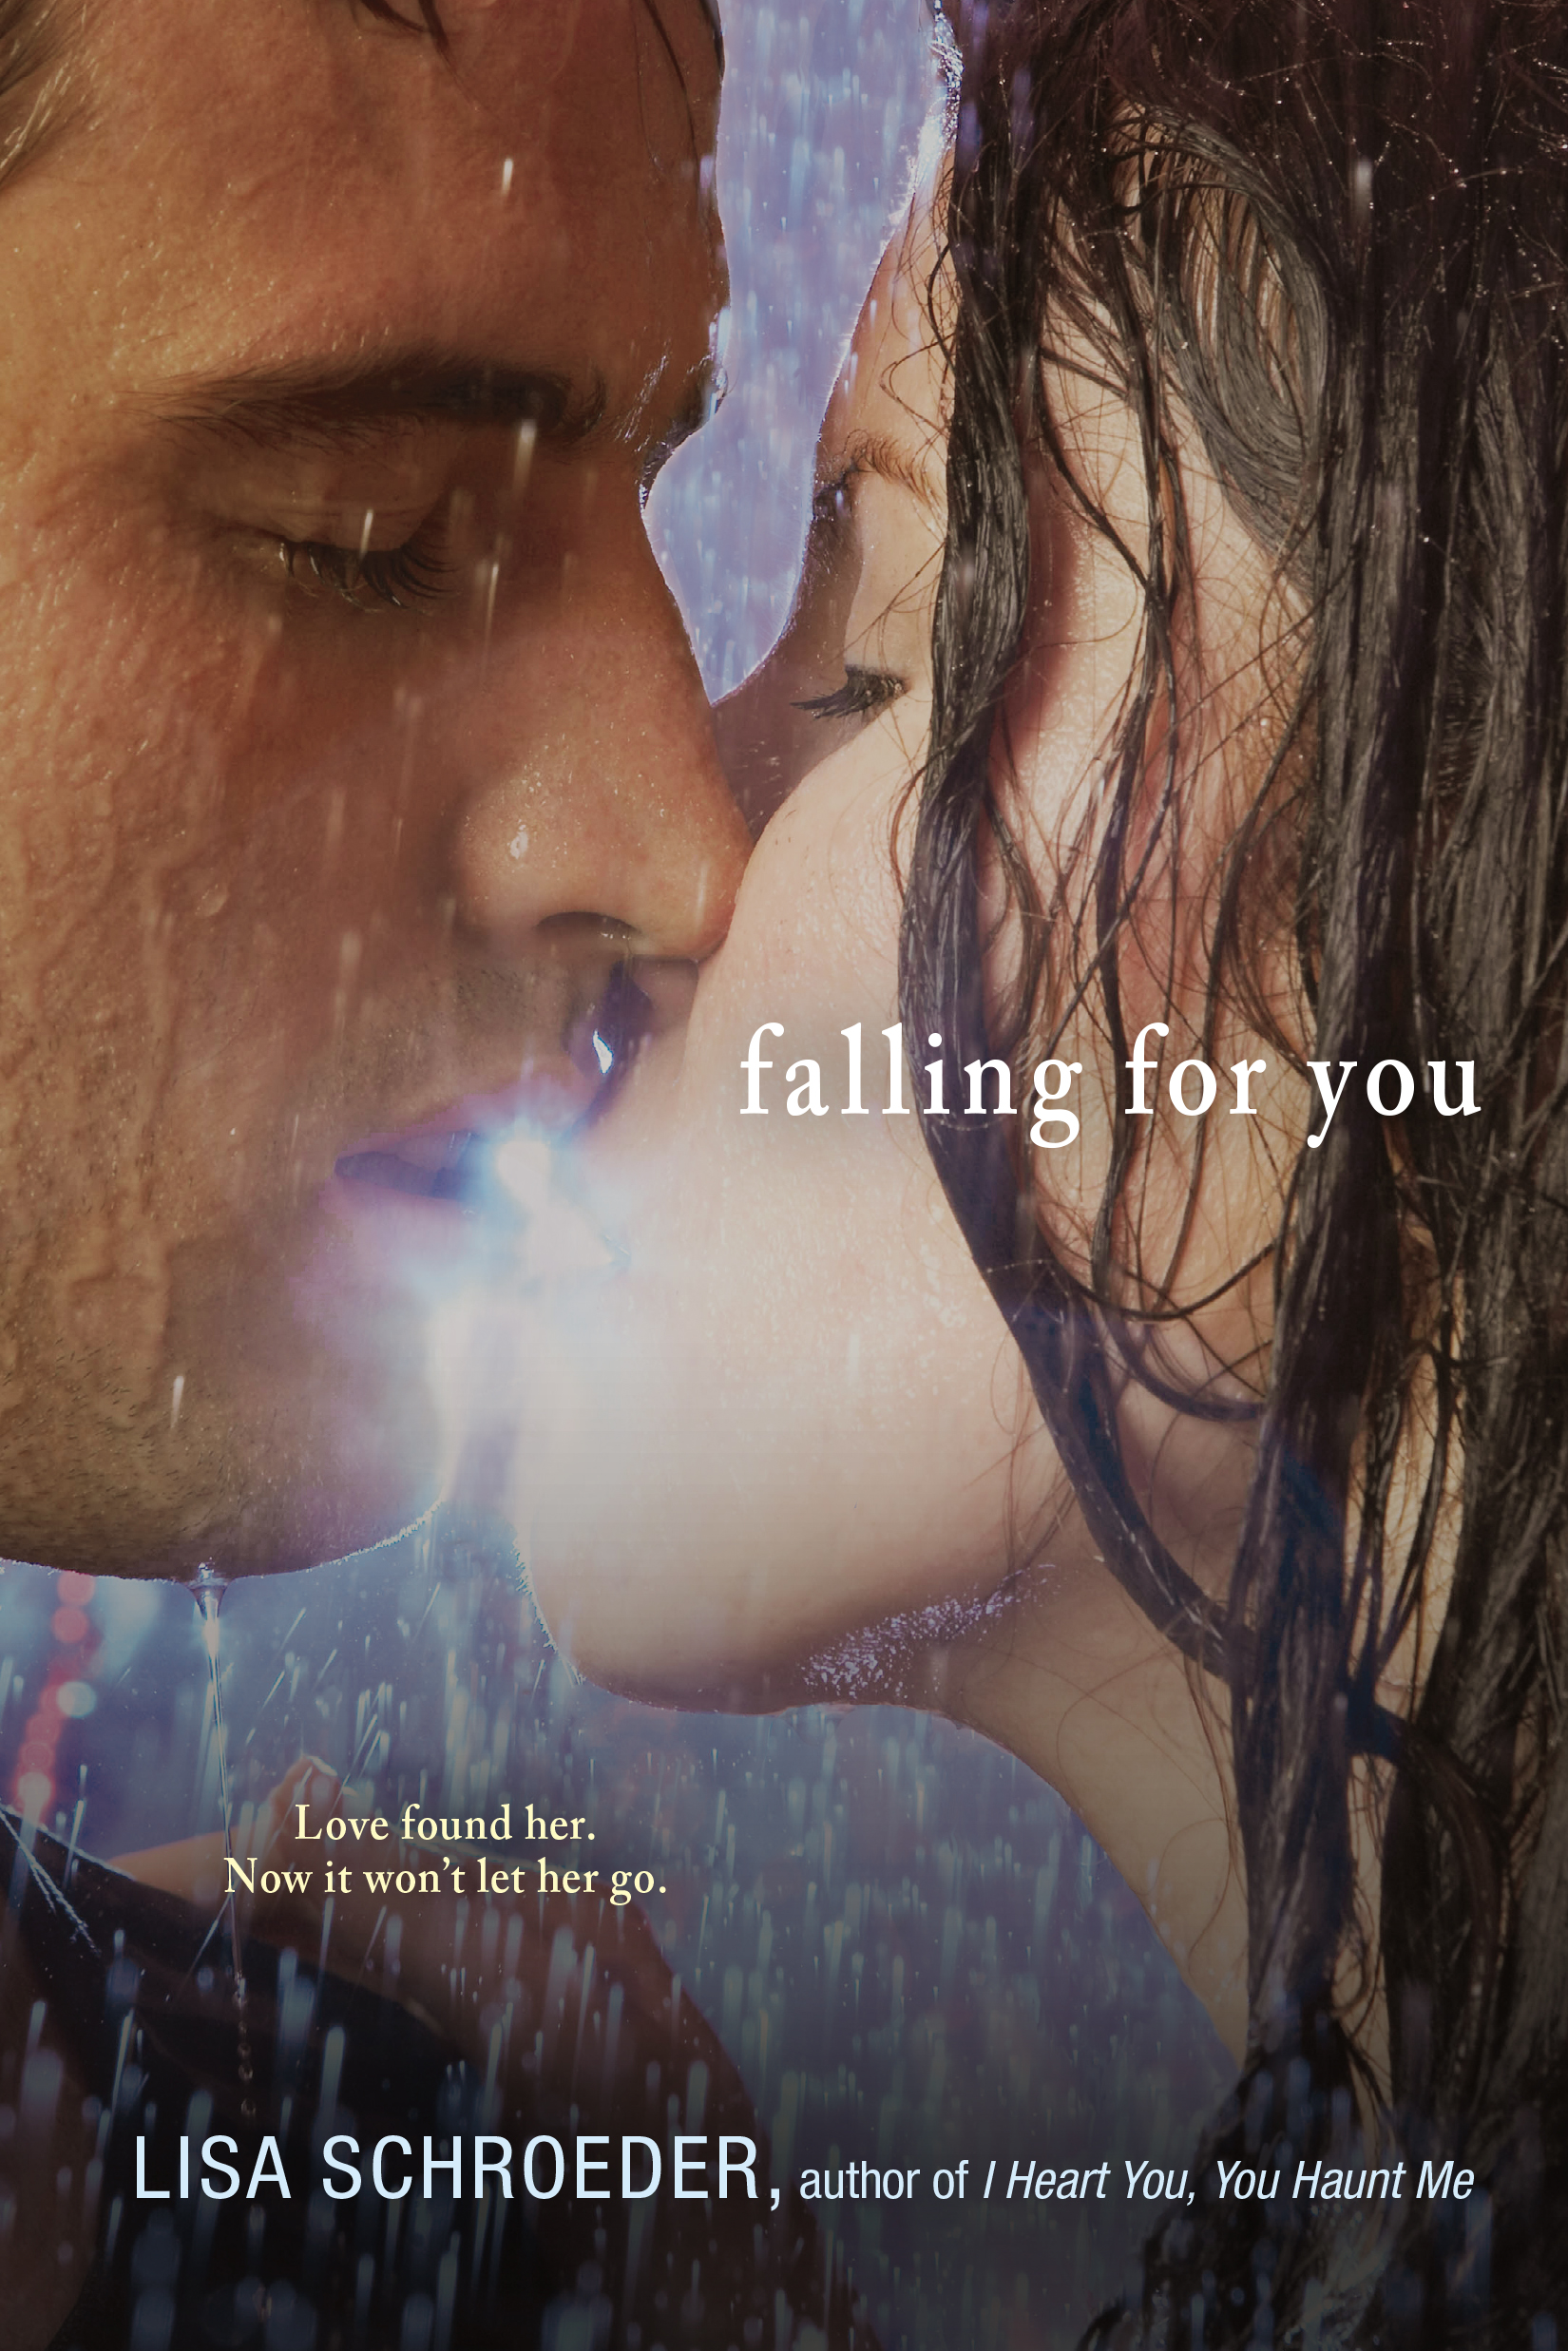 Falling-for-you-9781442444003_hr